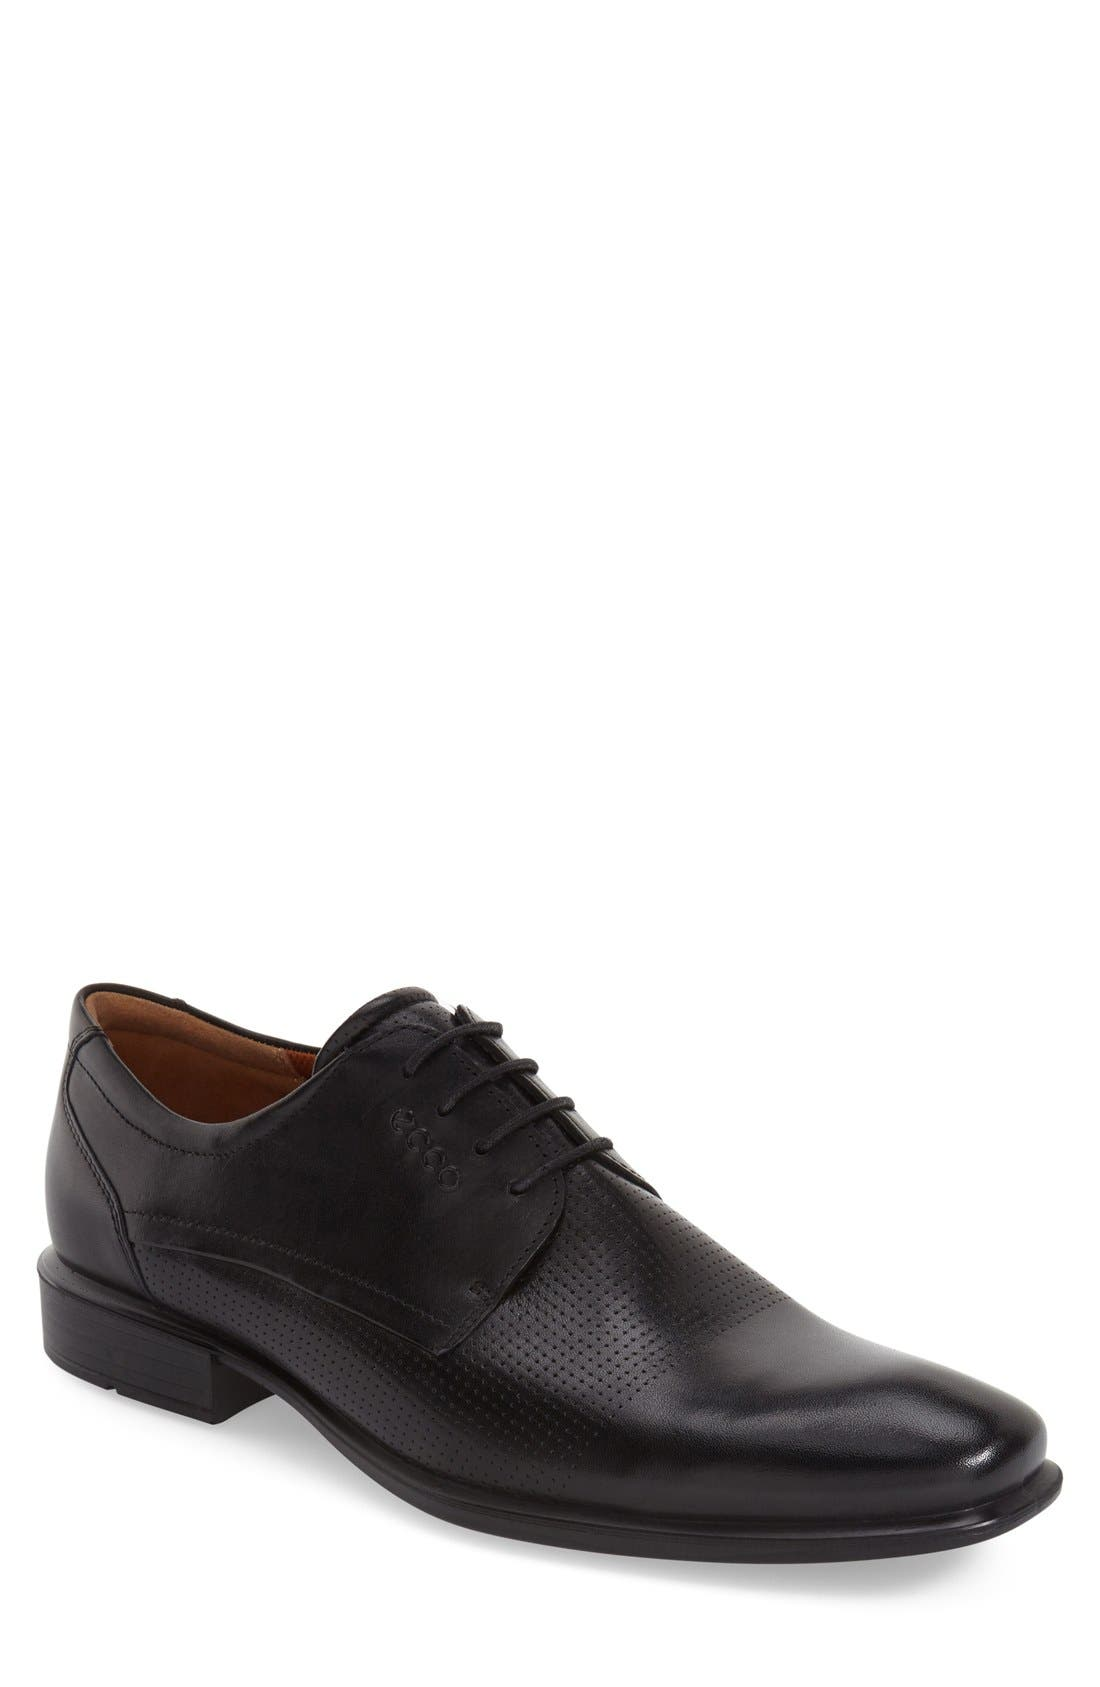 'Cairo' Perforated Plain Toe Derby,                         Main,                         color, 001